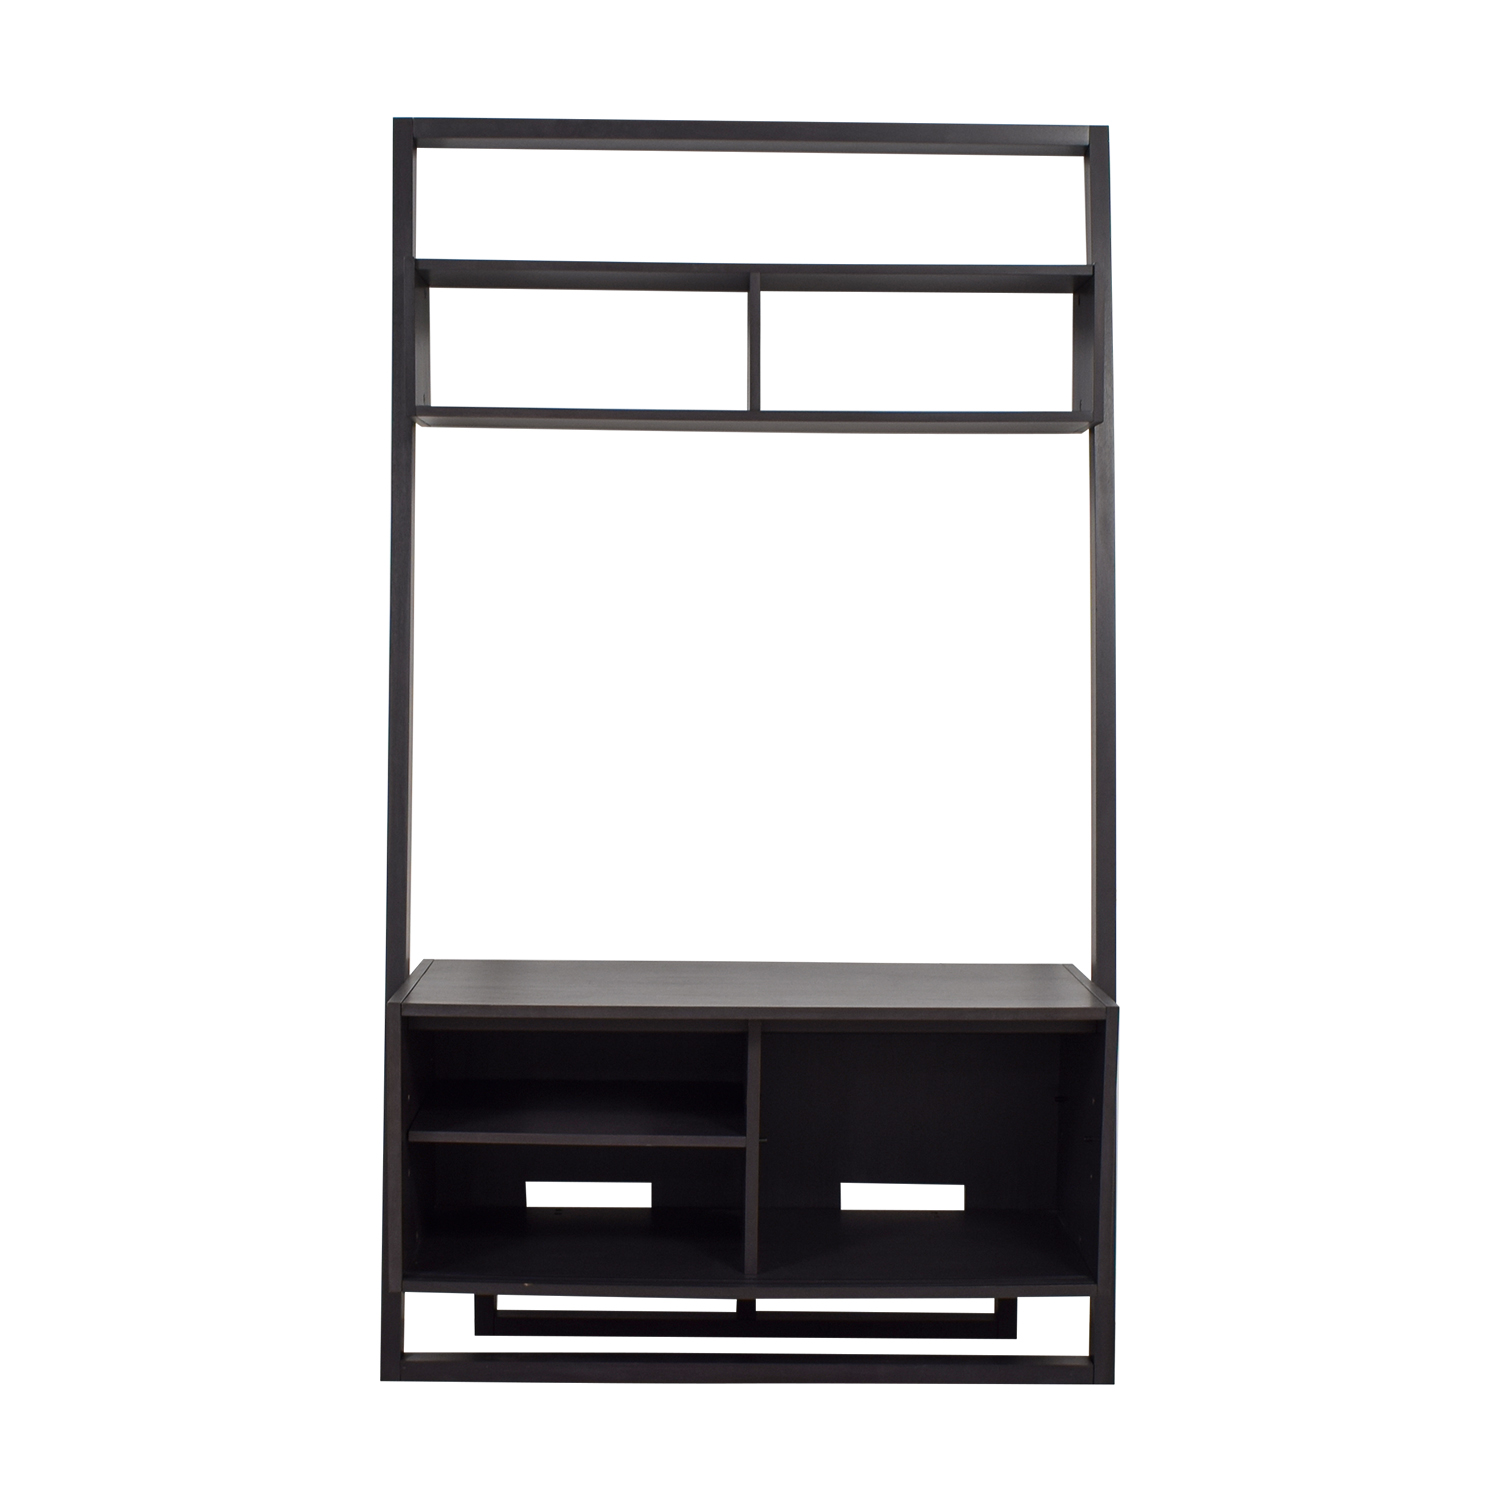 crate and barrel sloane leaning bookcase instructions